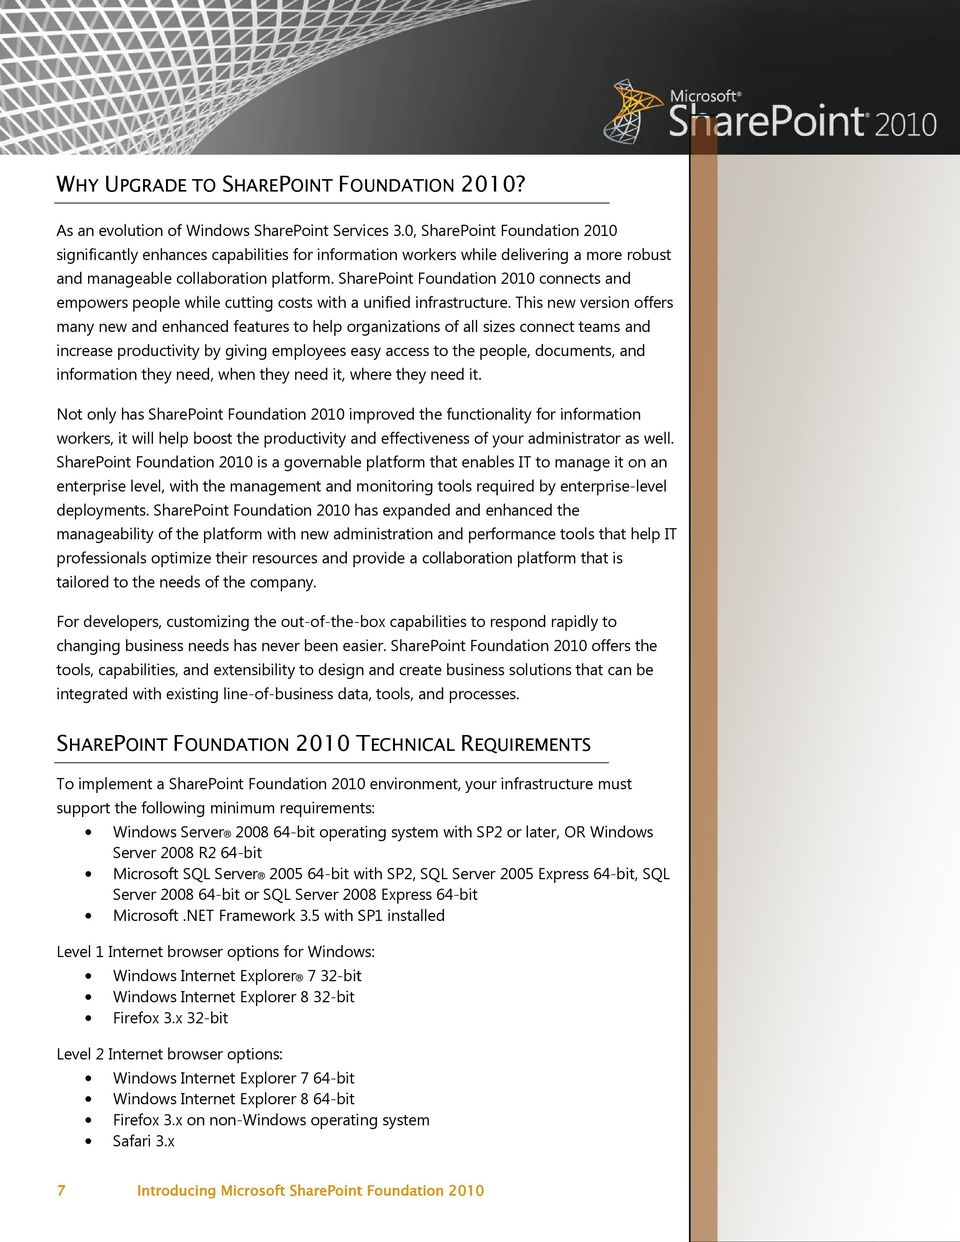 . SharePoint Foundation 2010 connects and empowers people while cutting costs with a unified infrastructure.